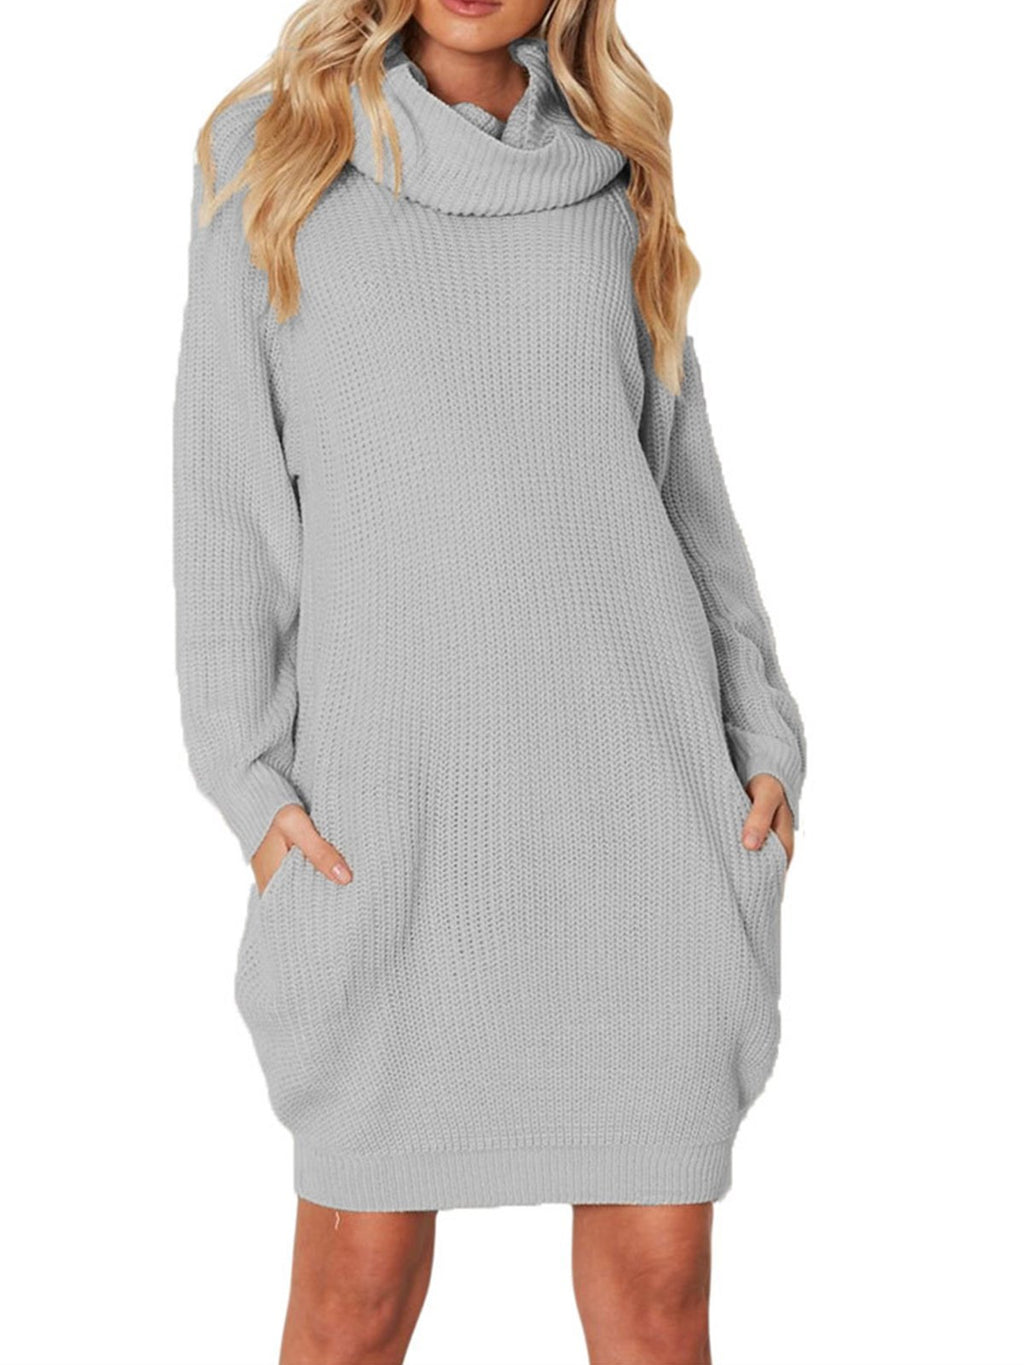 Midi Ribbed High-neck Ladies Knitted Sweater